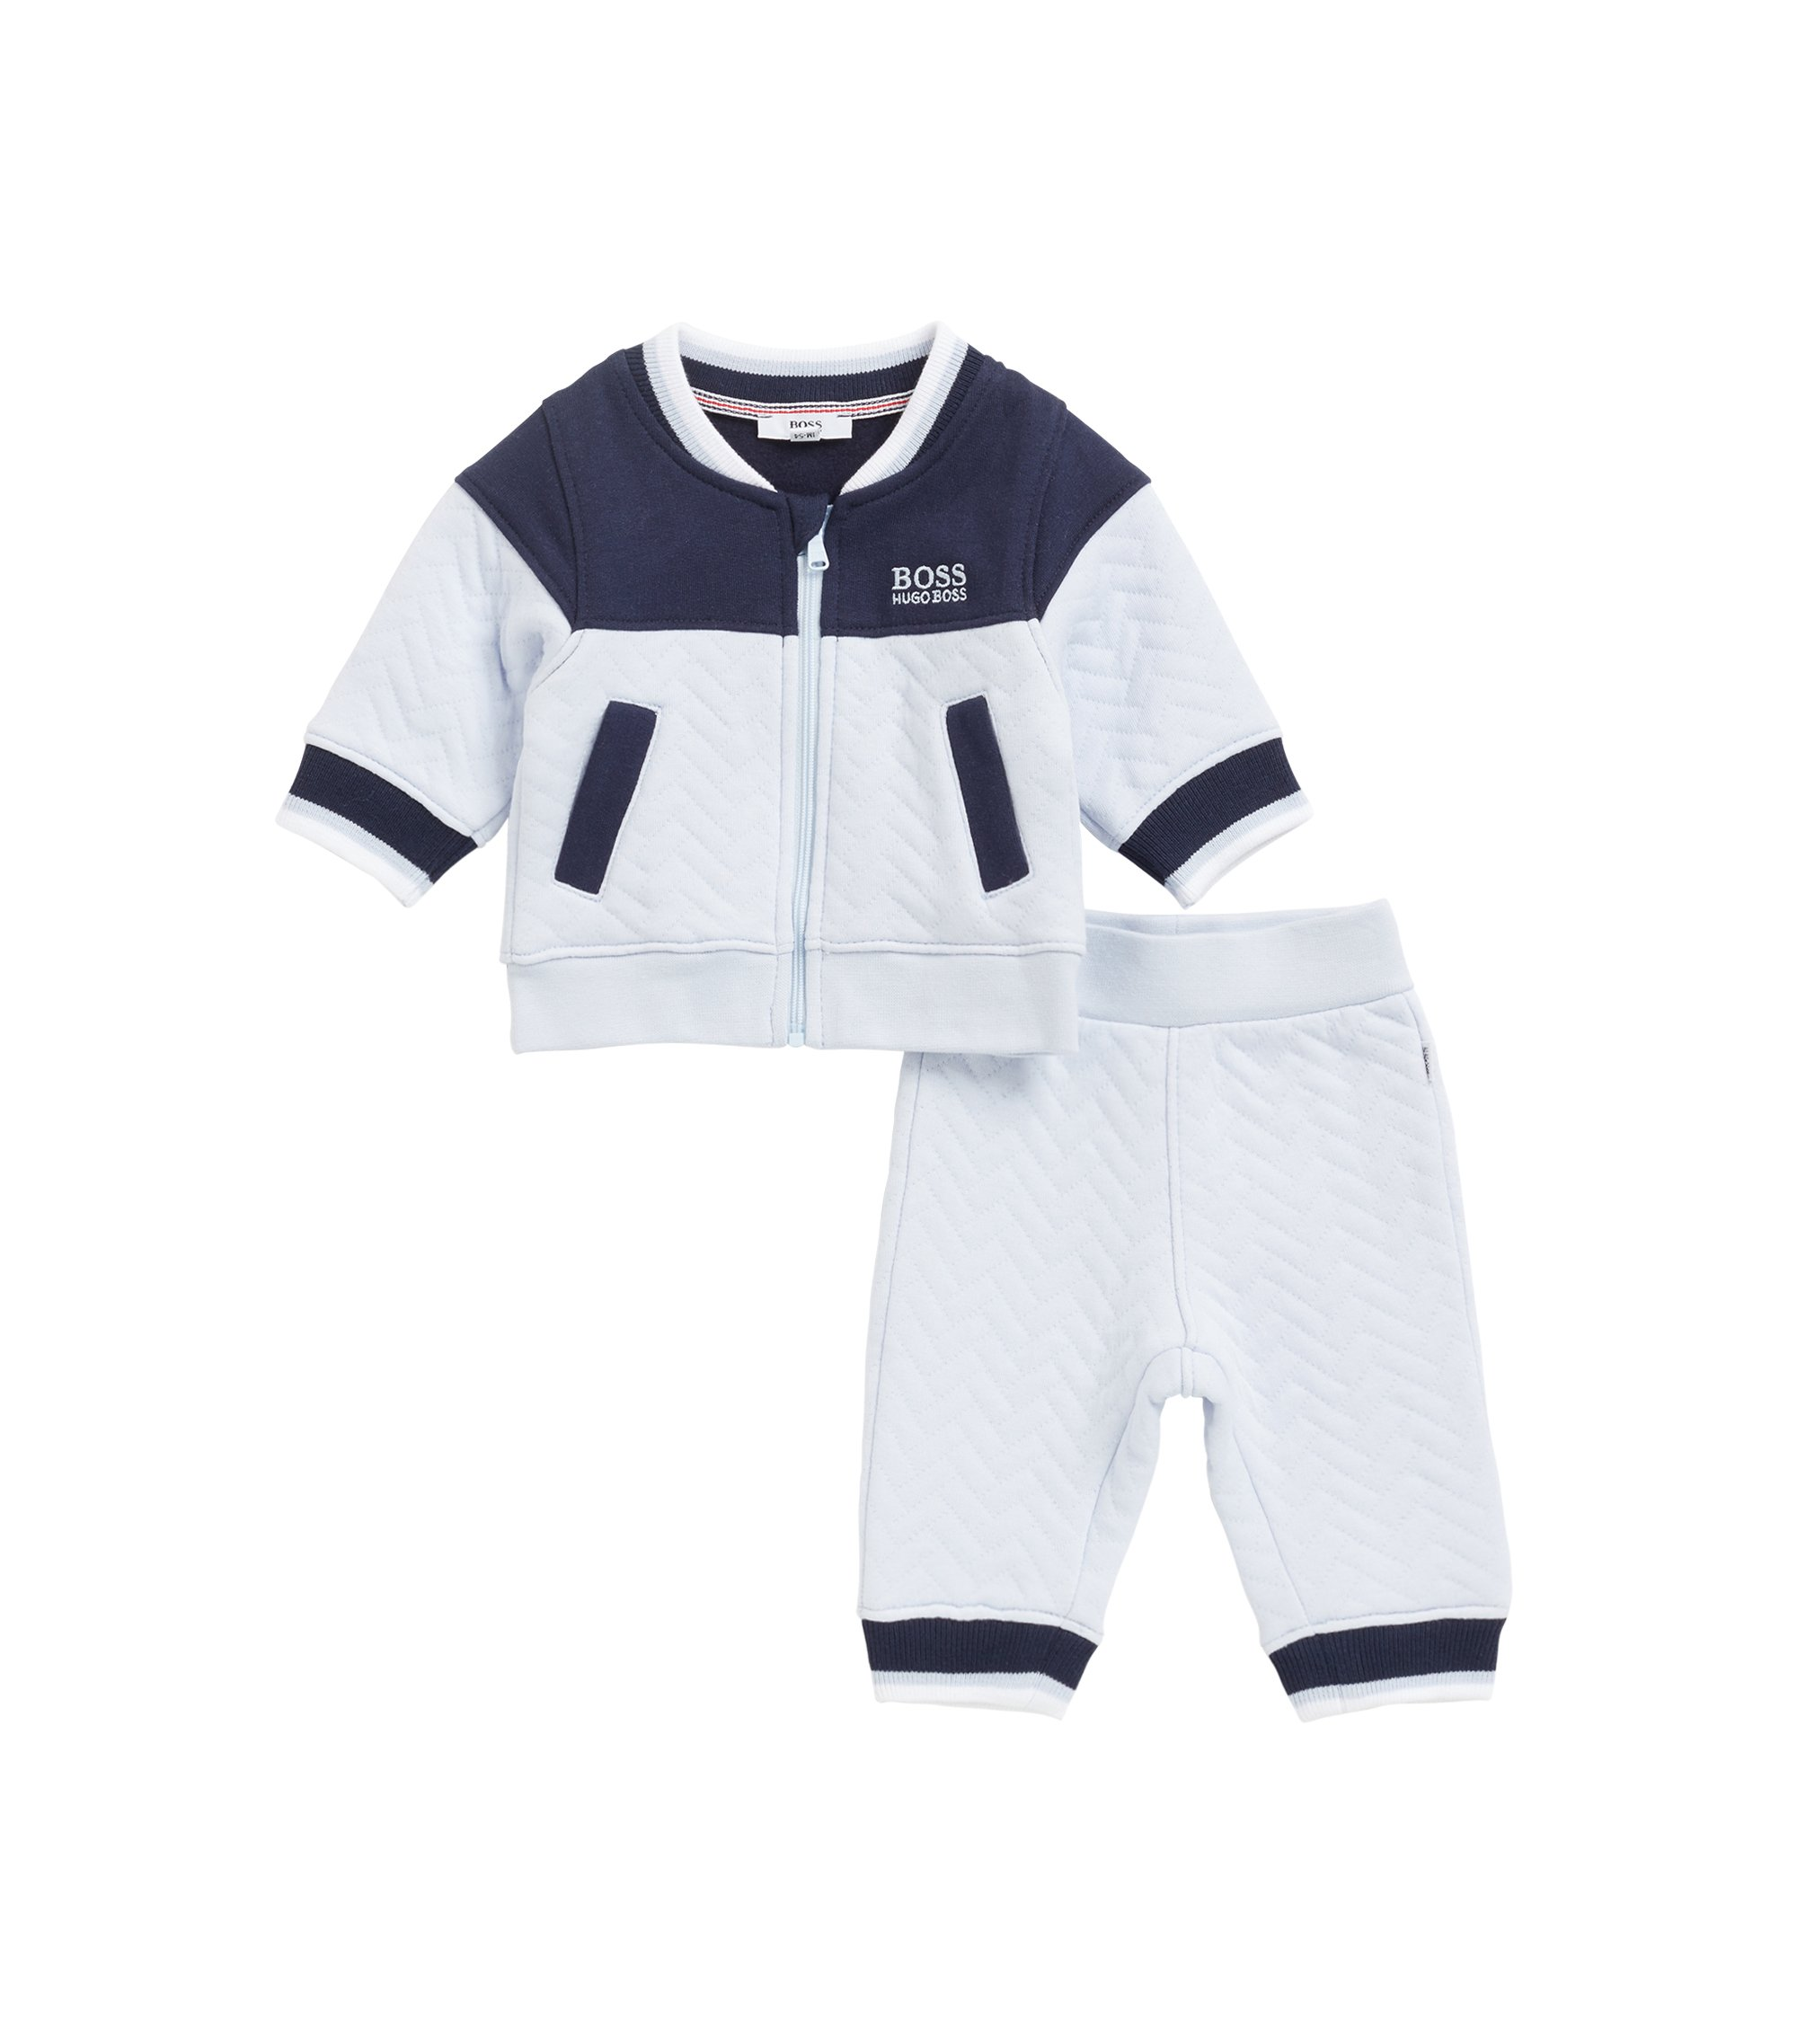 Three-piece baby loungewear tracksuit in a gift box, Patterned